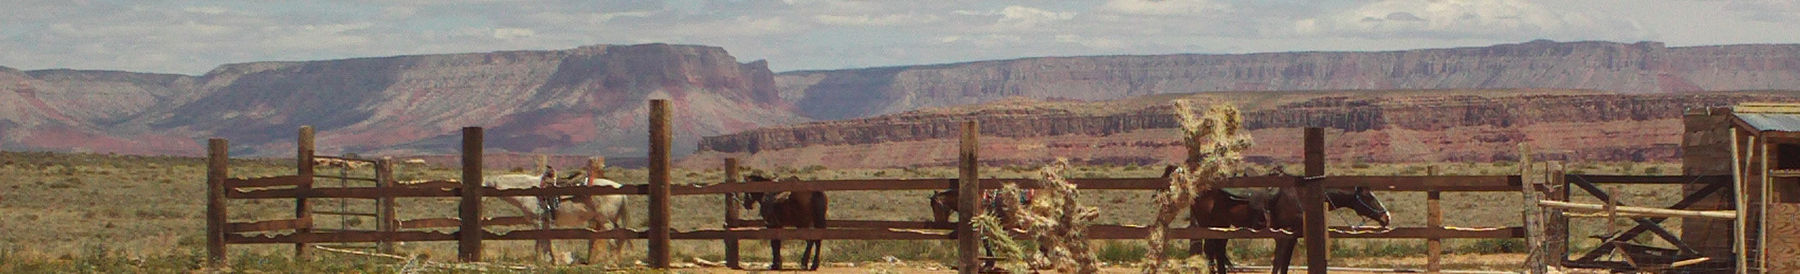 Arizona banner Grand Canyon.jpg